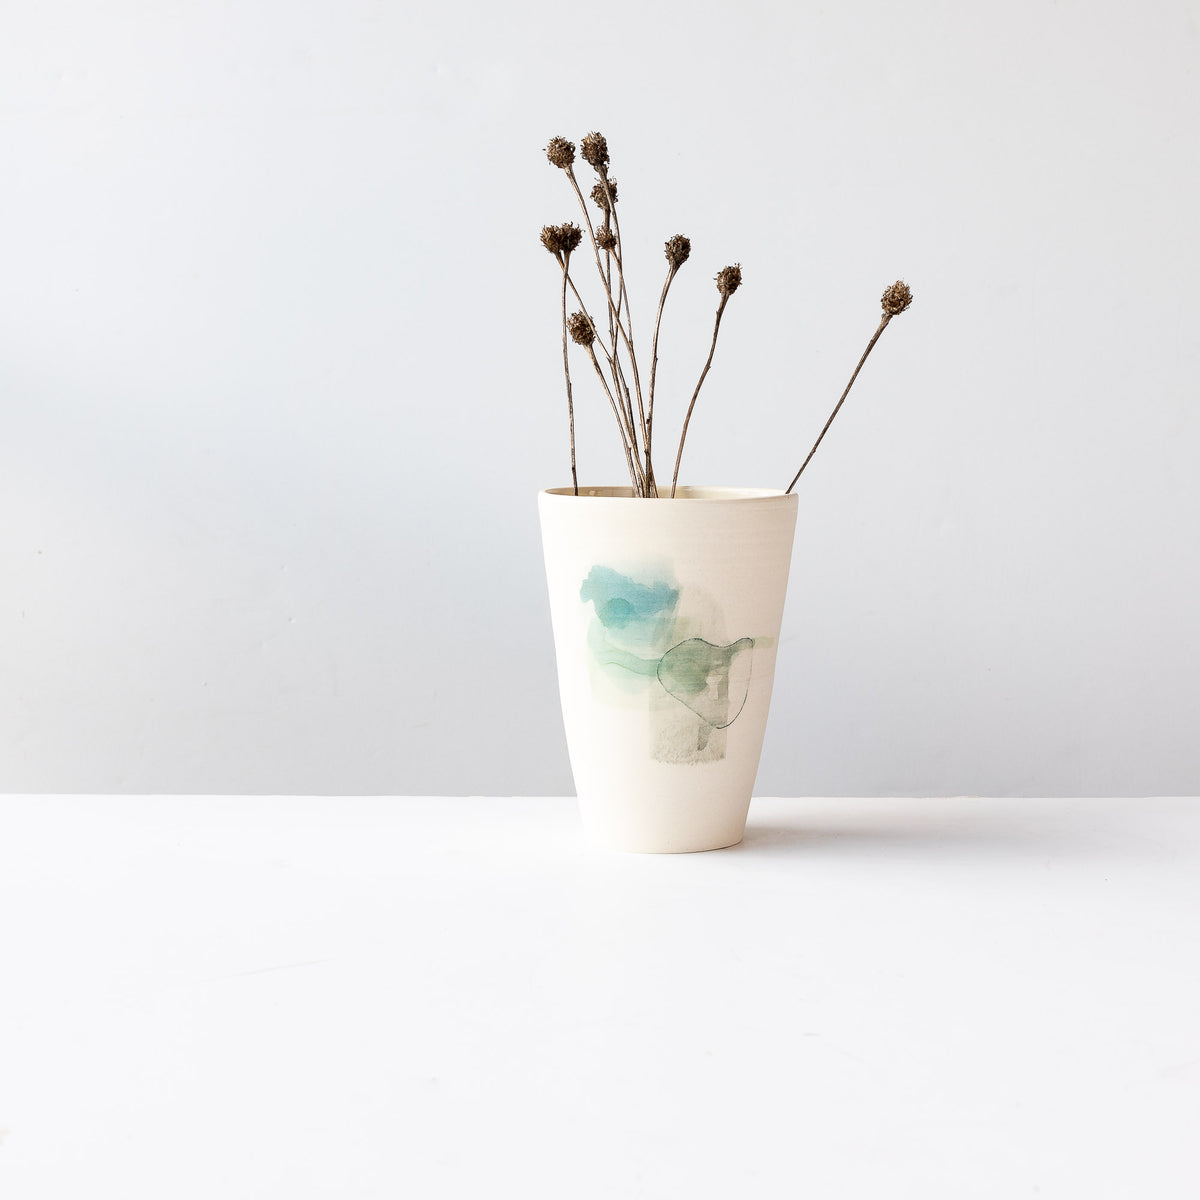 Hand Painted Porcelain Vase Shown With Dry Flowers - Sold by Chic & Basta